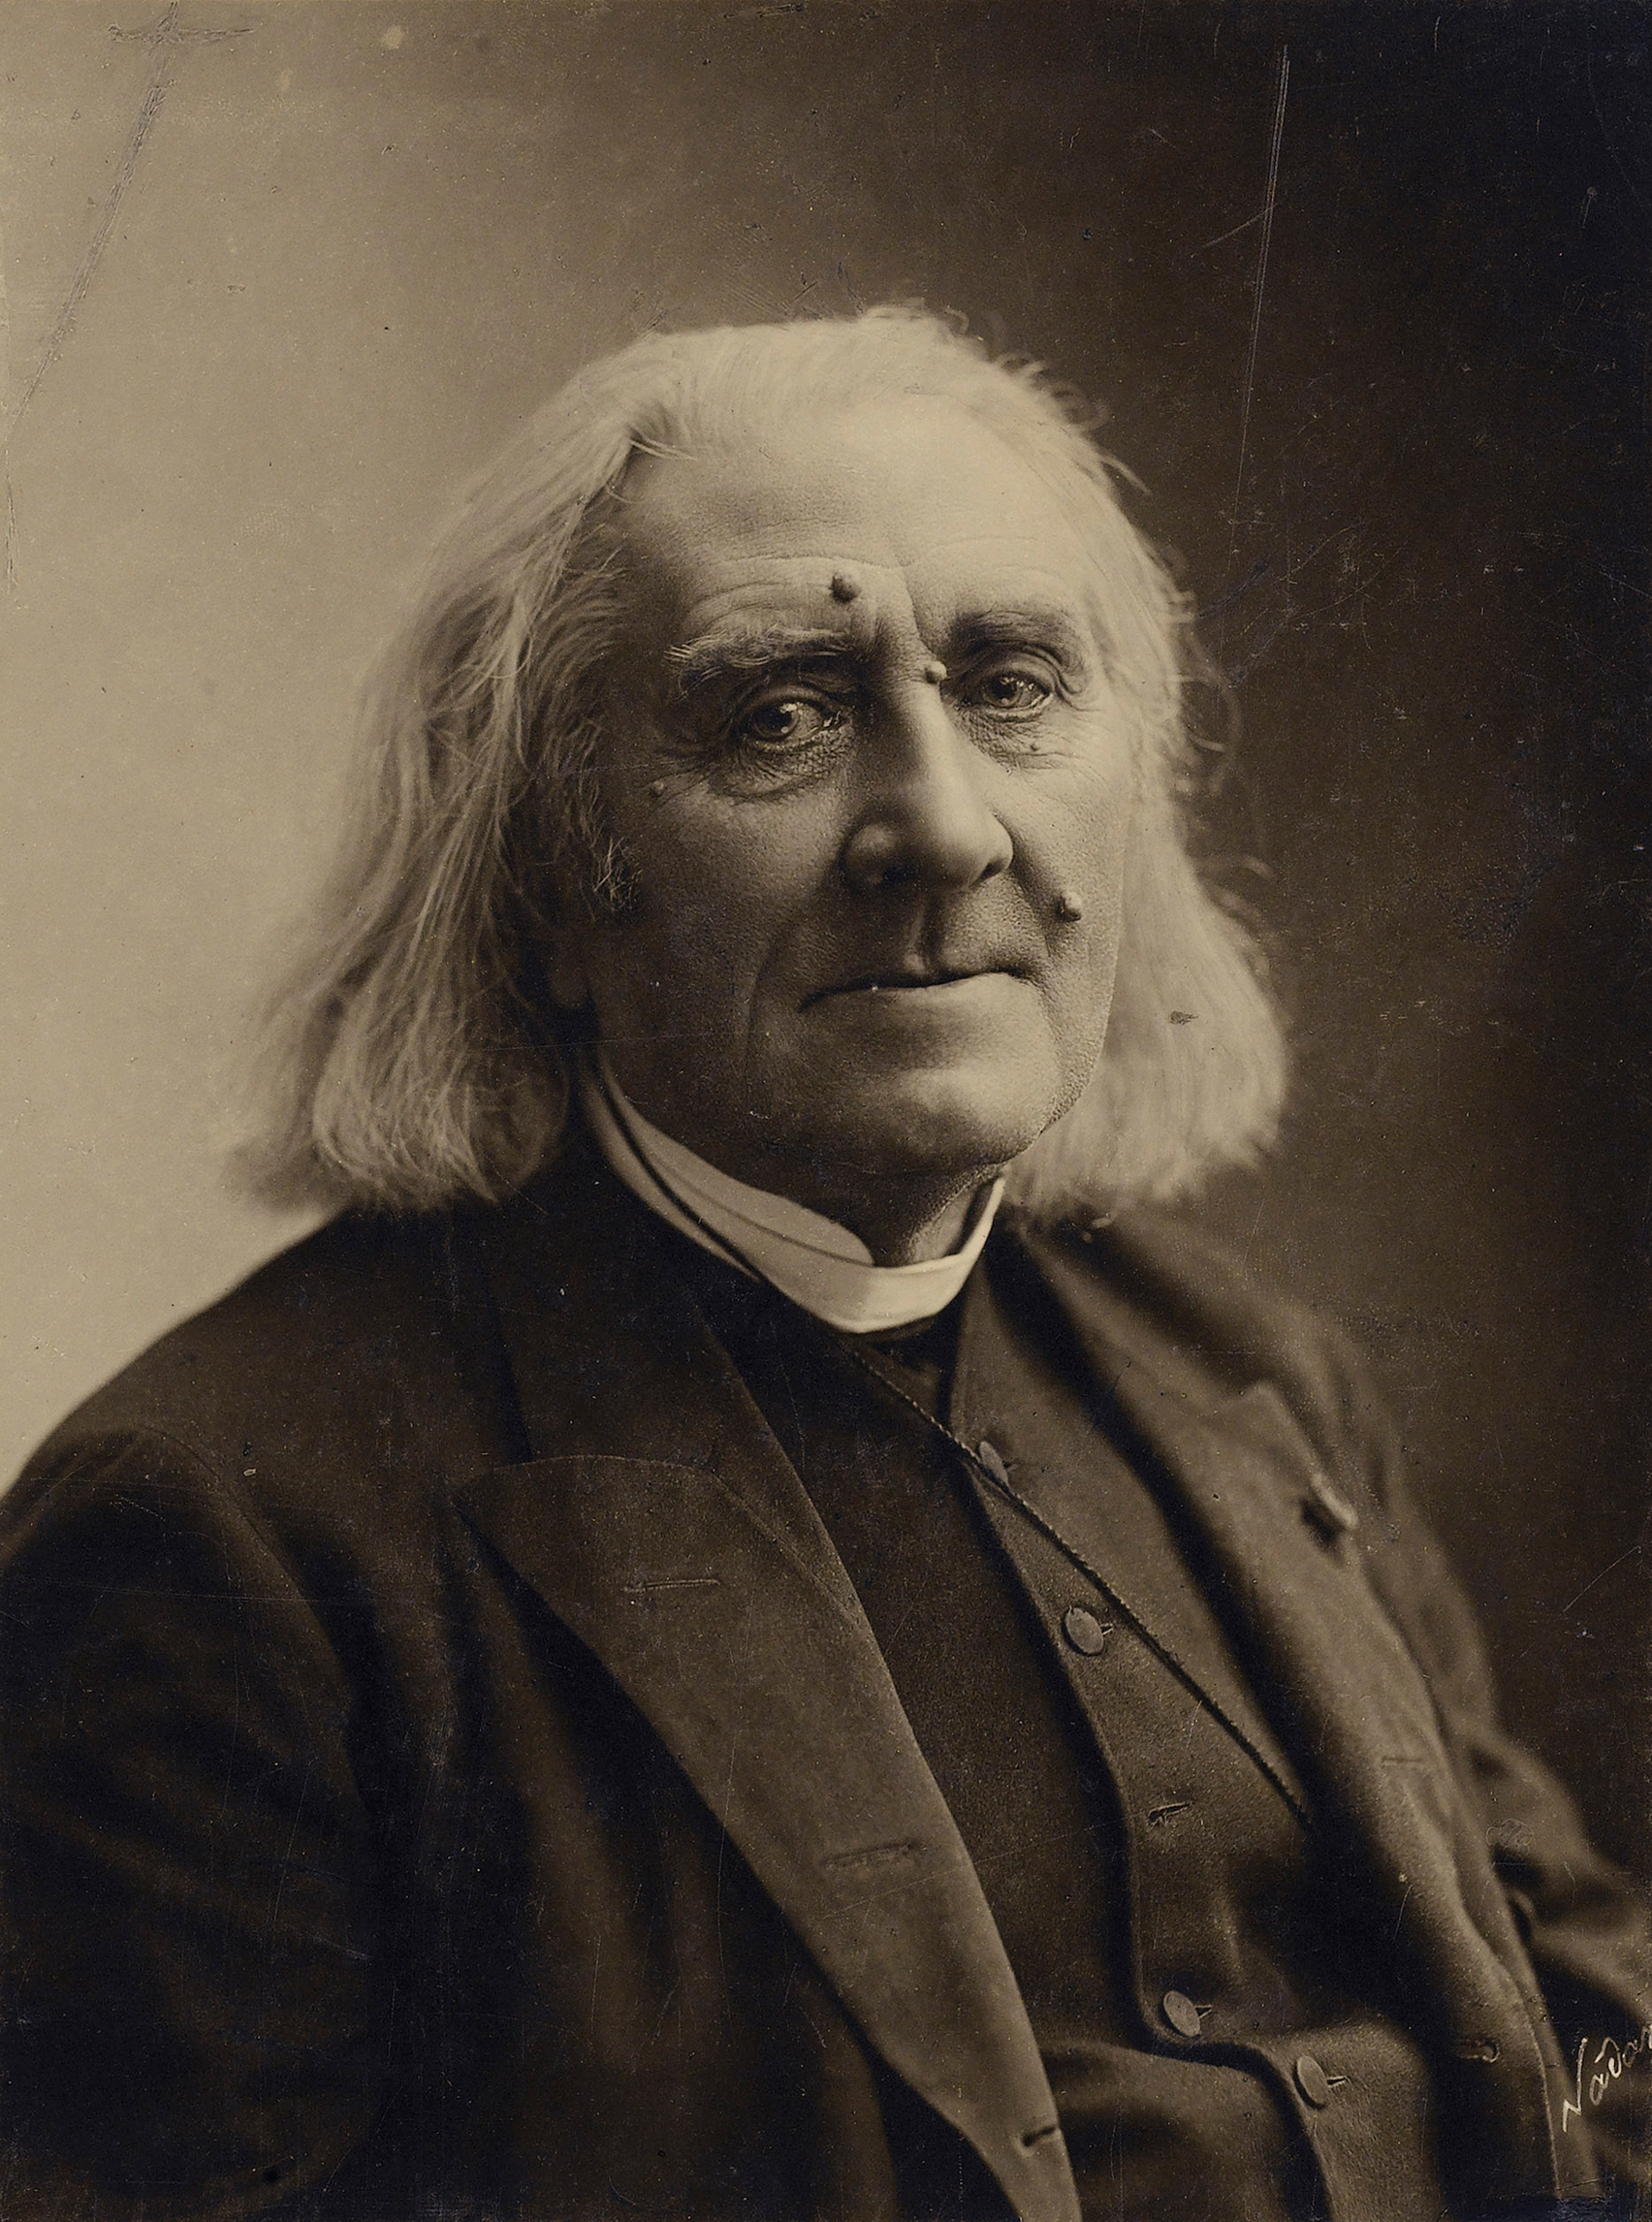 franz liszt Read about the life, work, and music of brilliant and prolific hungarian piano virtuoso and composer franz liszt on biographycom.